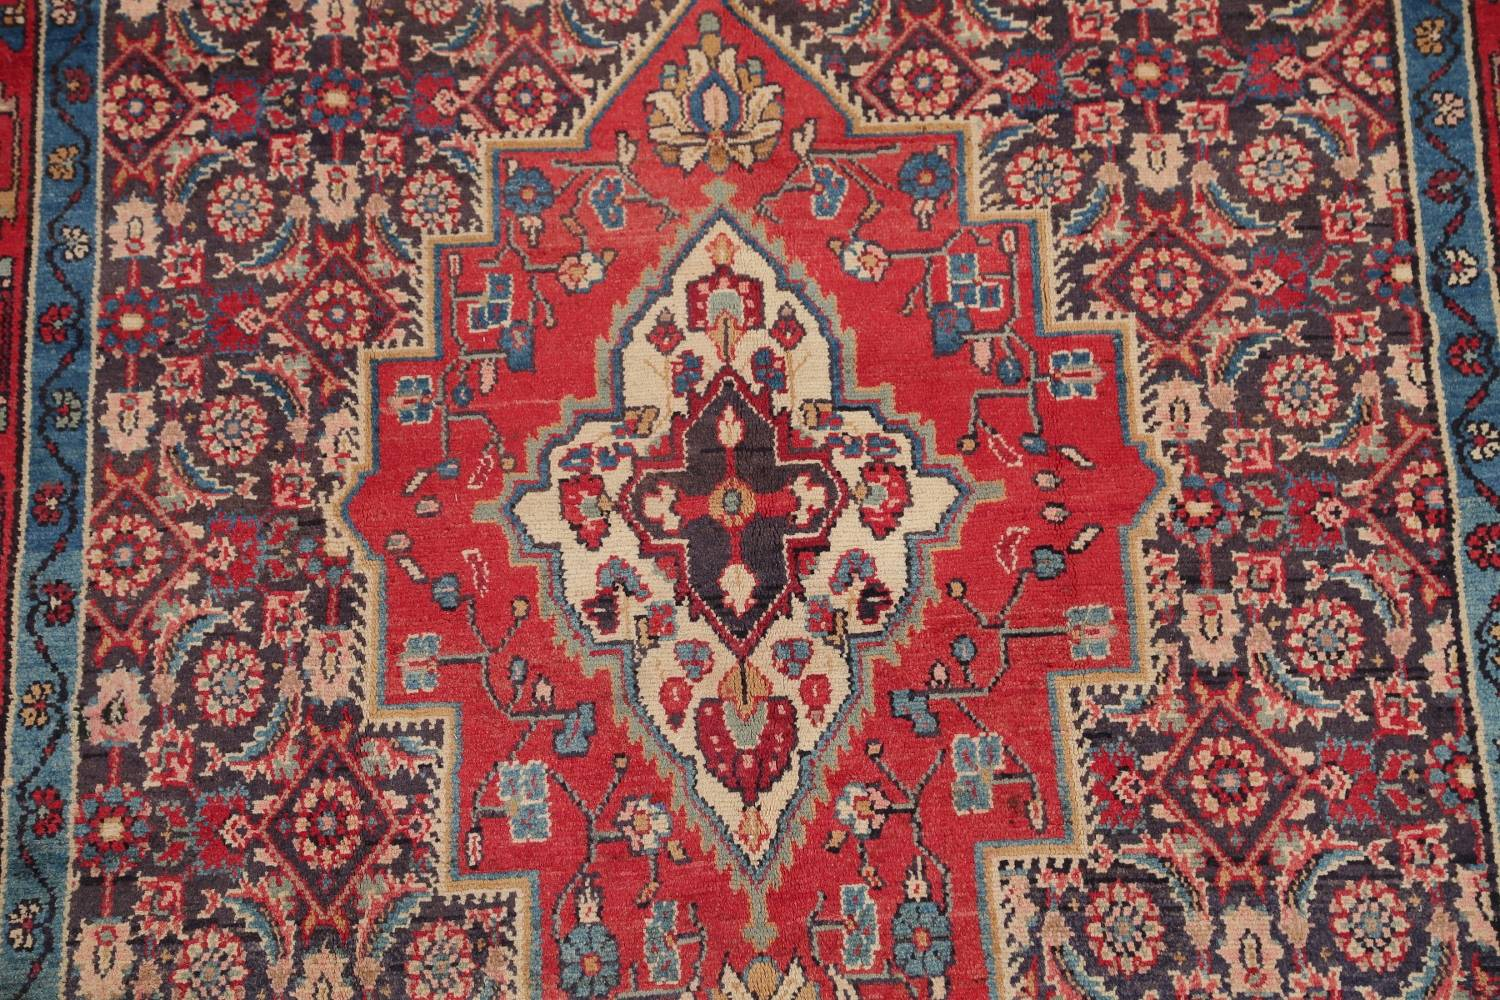 Antique Bakhtiari Persian Hand-Knotted 5x10 Wool Runner Rug image 4